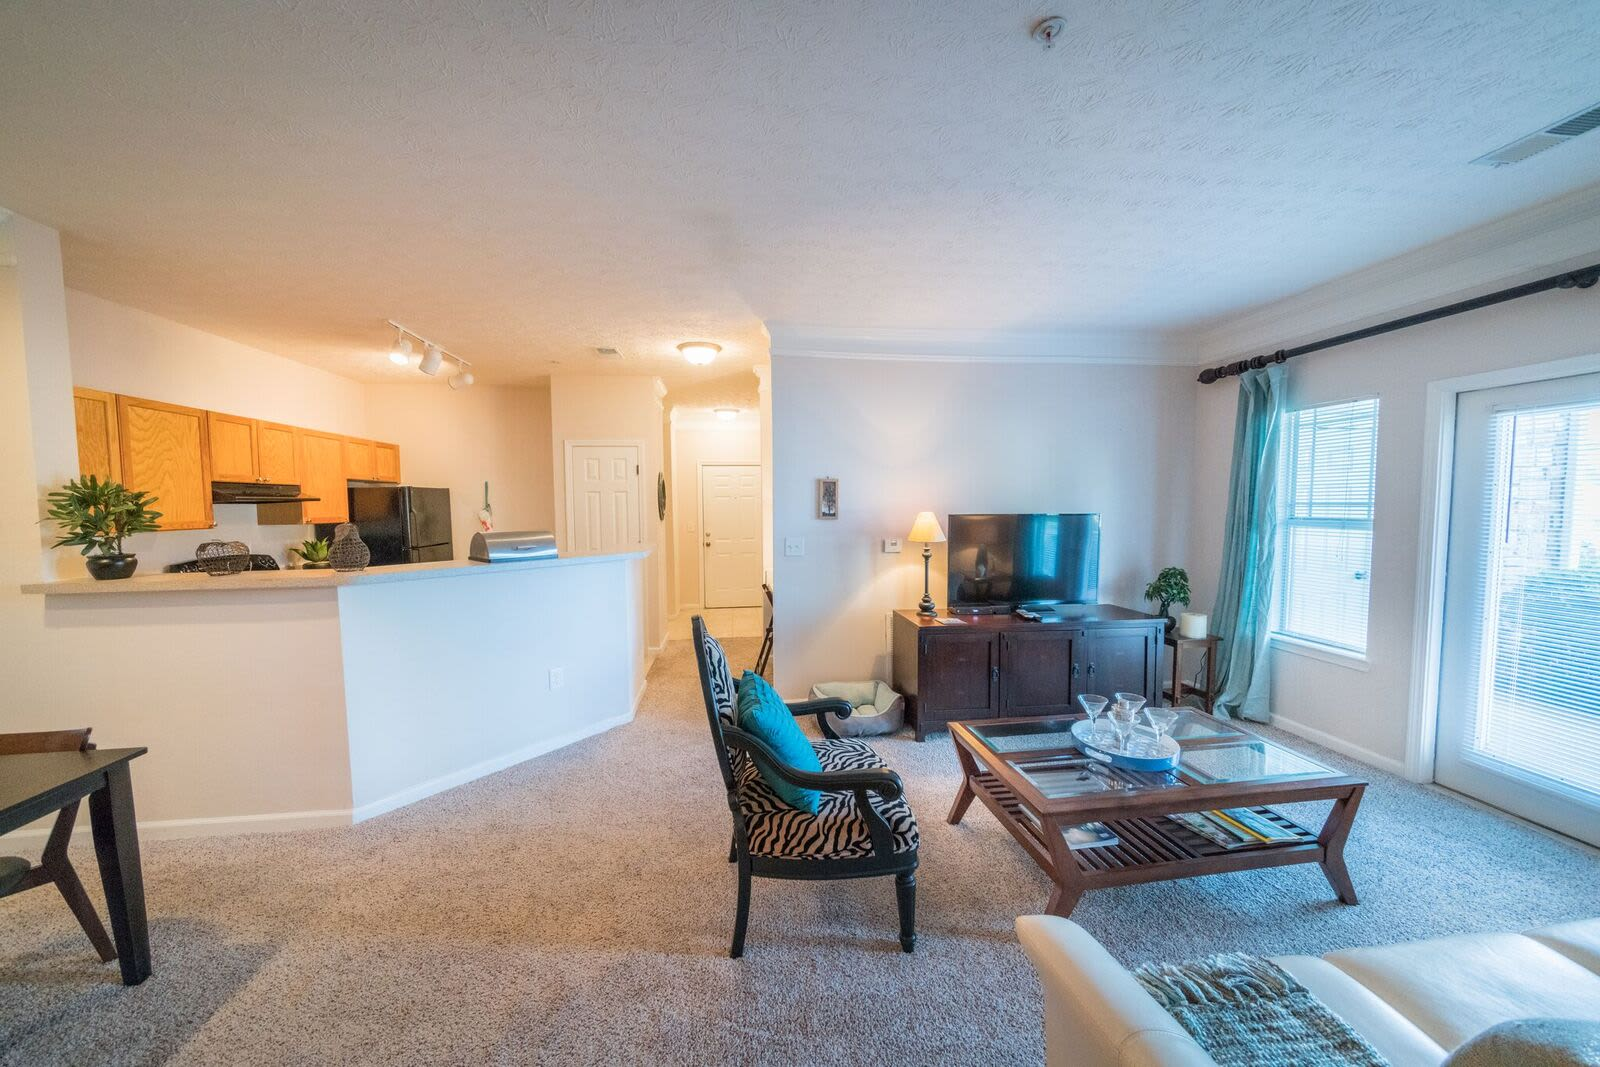 Our apartments in McDonough, Georgia showcase a spacious living room